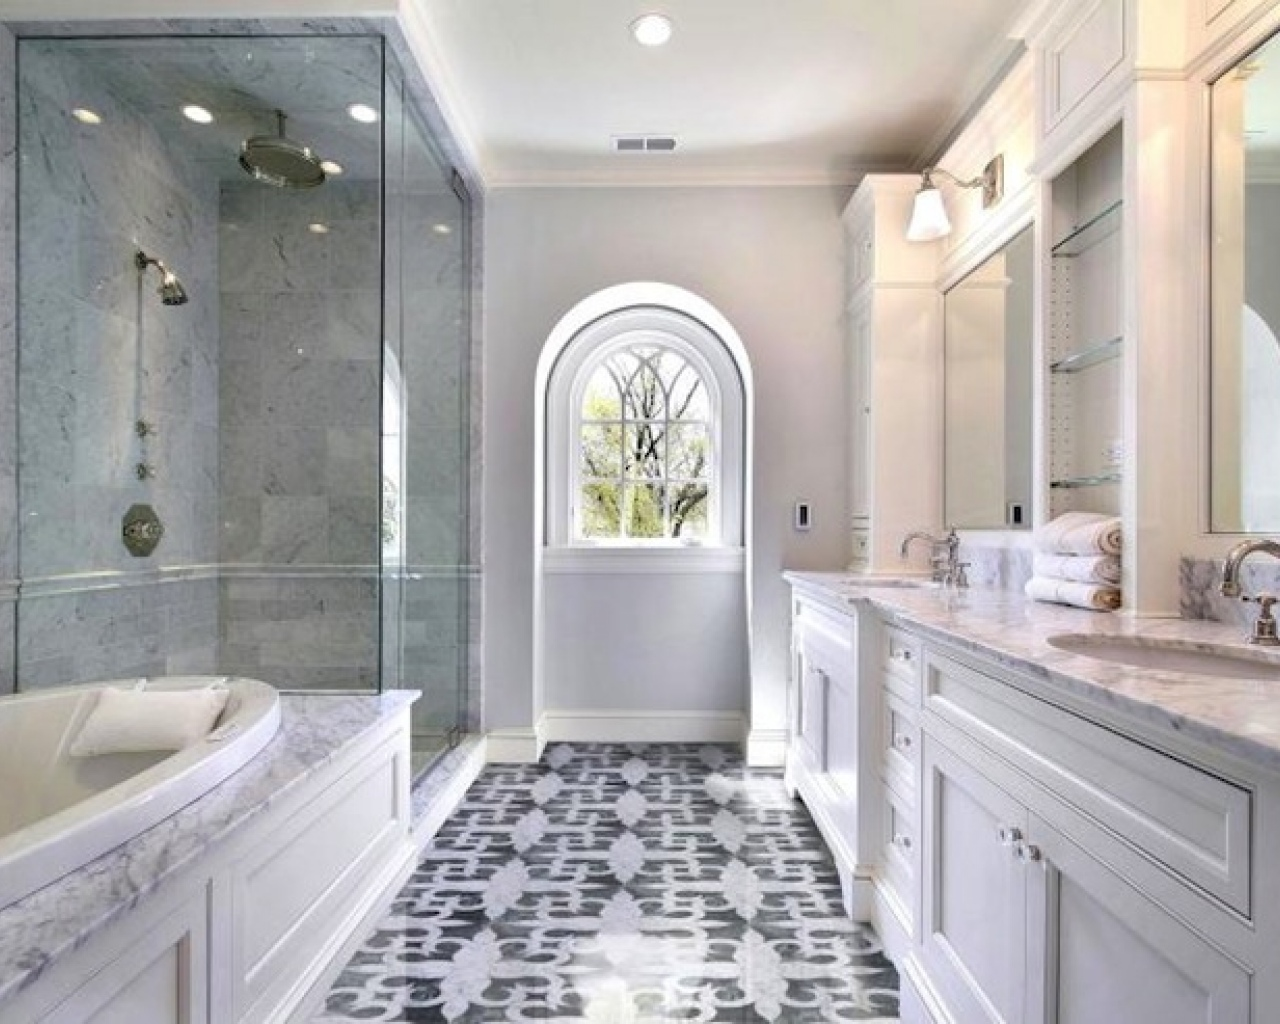 25 amazing italian bathroom tile designs ideas and pictures for Tile countertops bathroom ideas